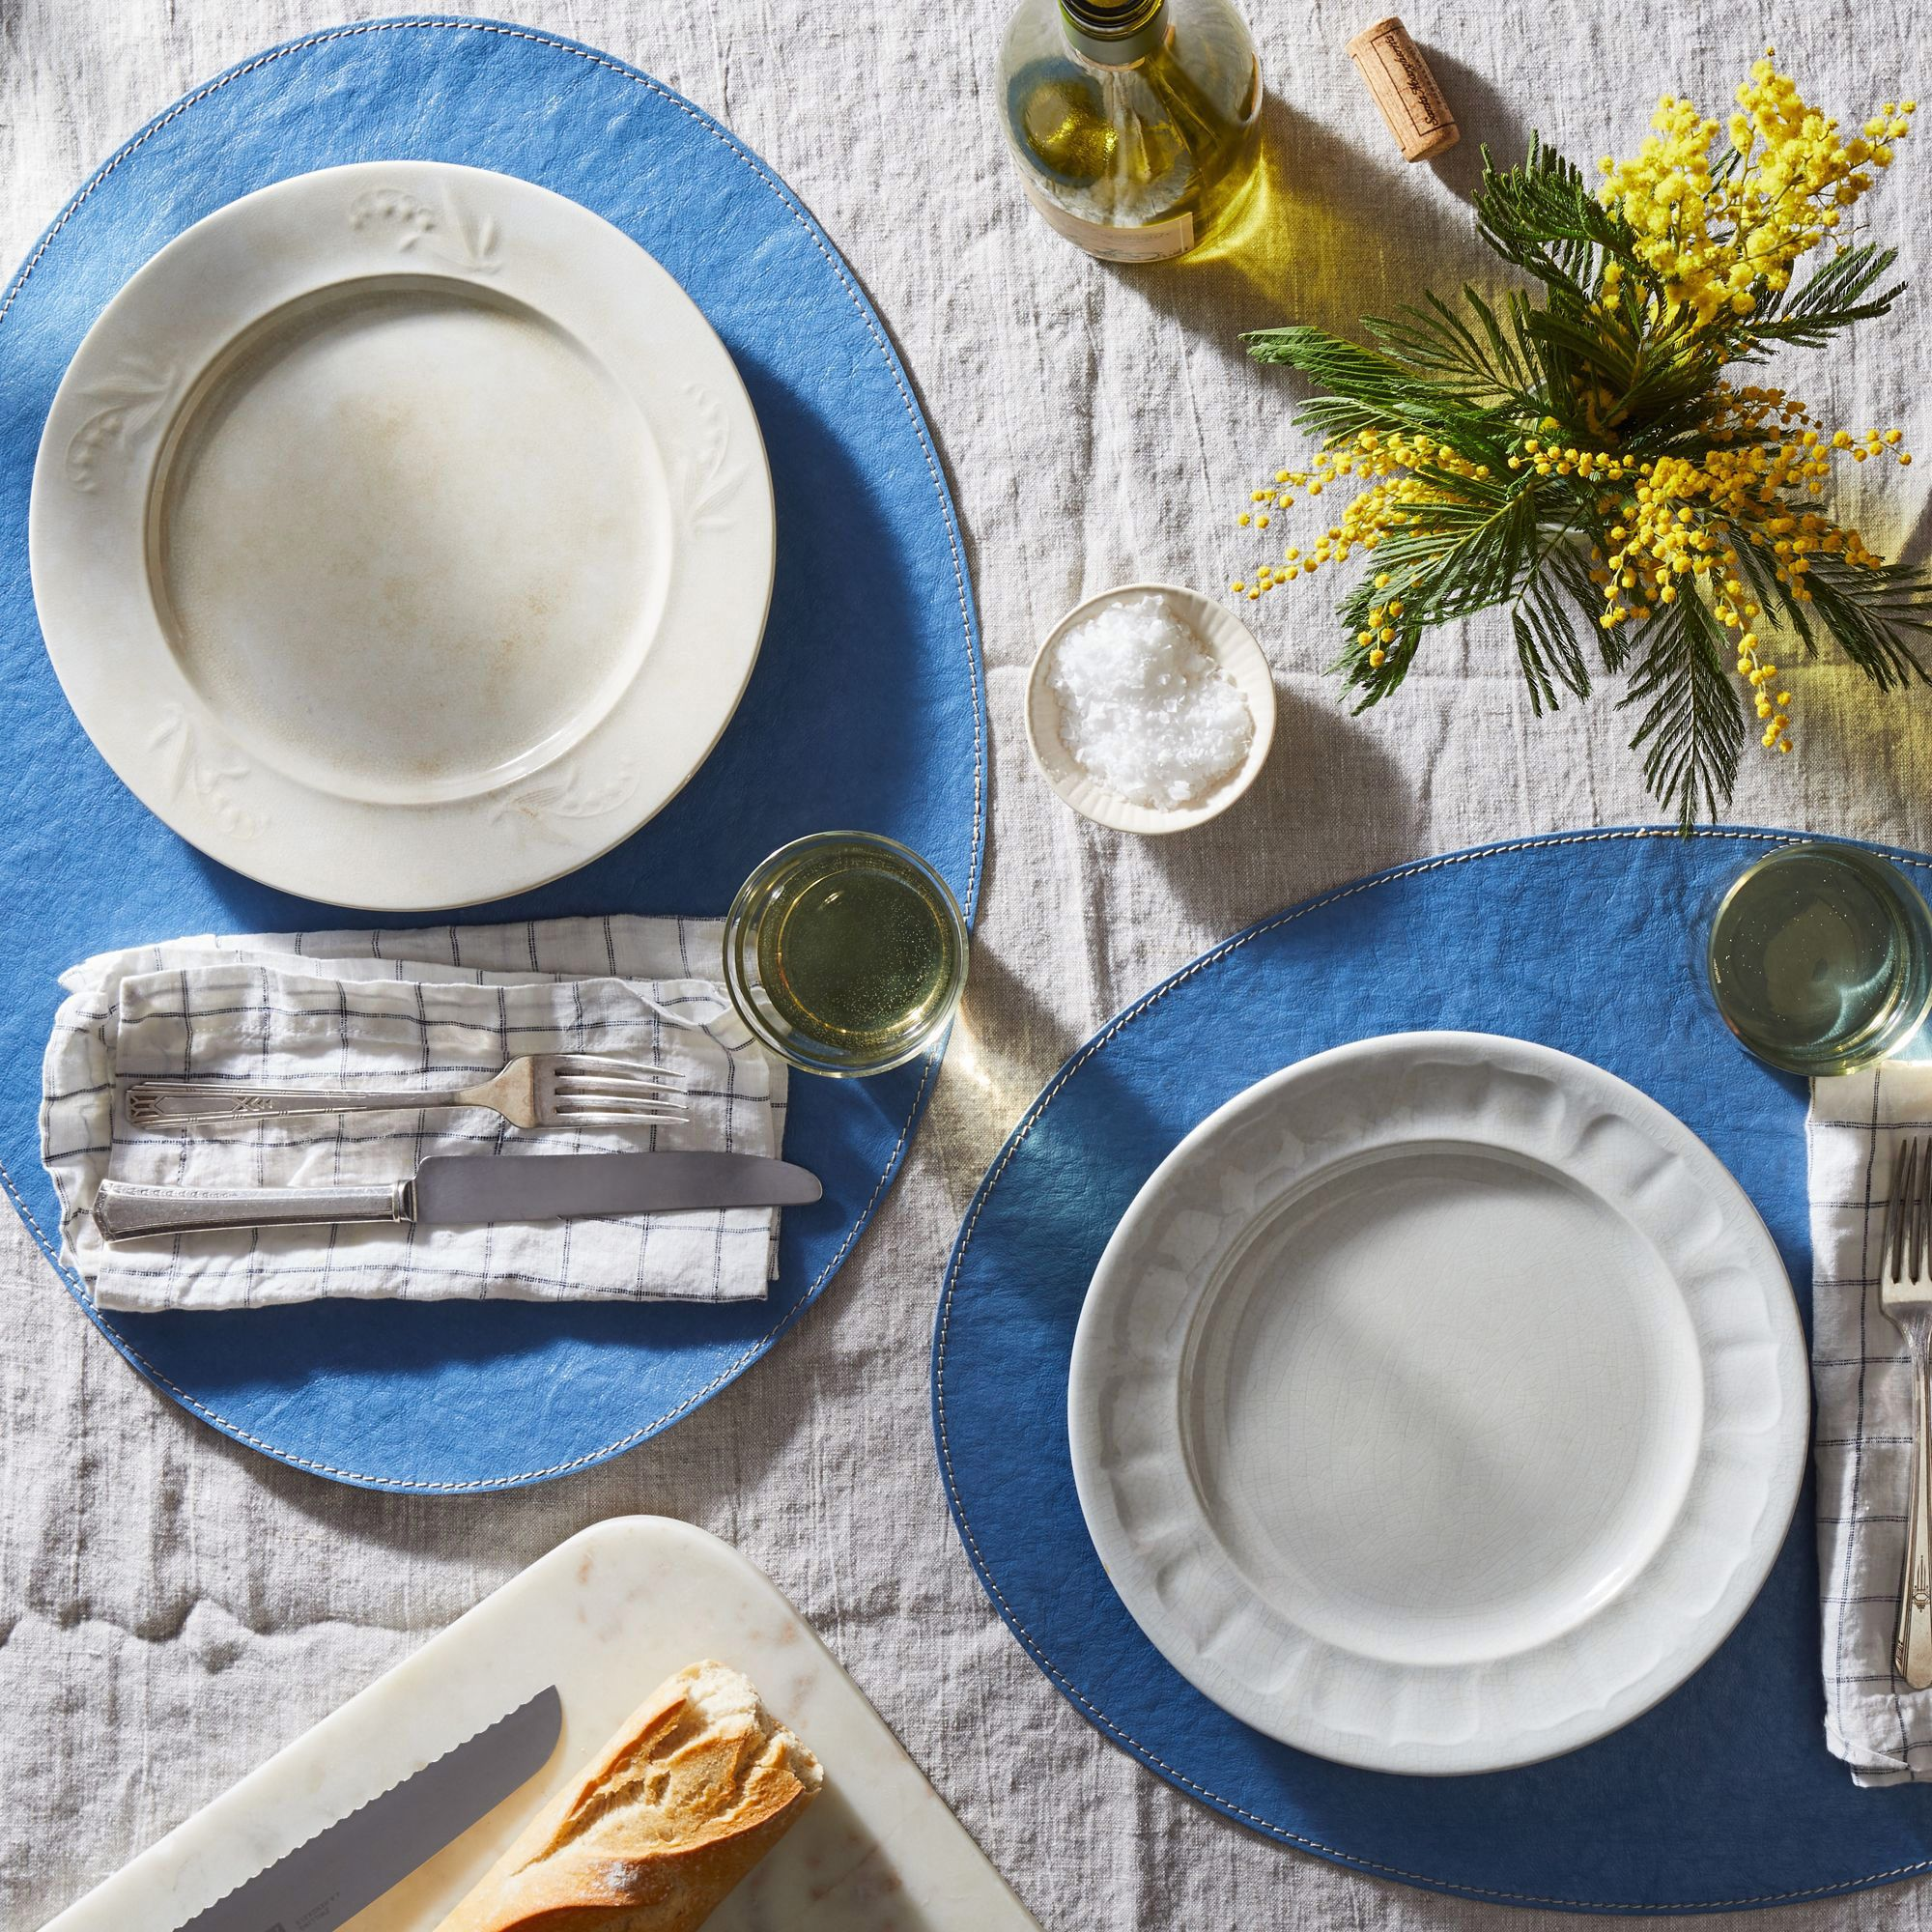 13 Best Placemats For Everyday Use 2020 The Strategist New York Magazine